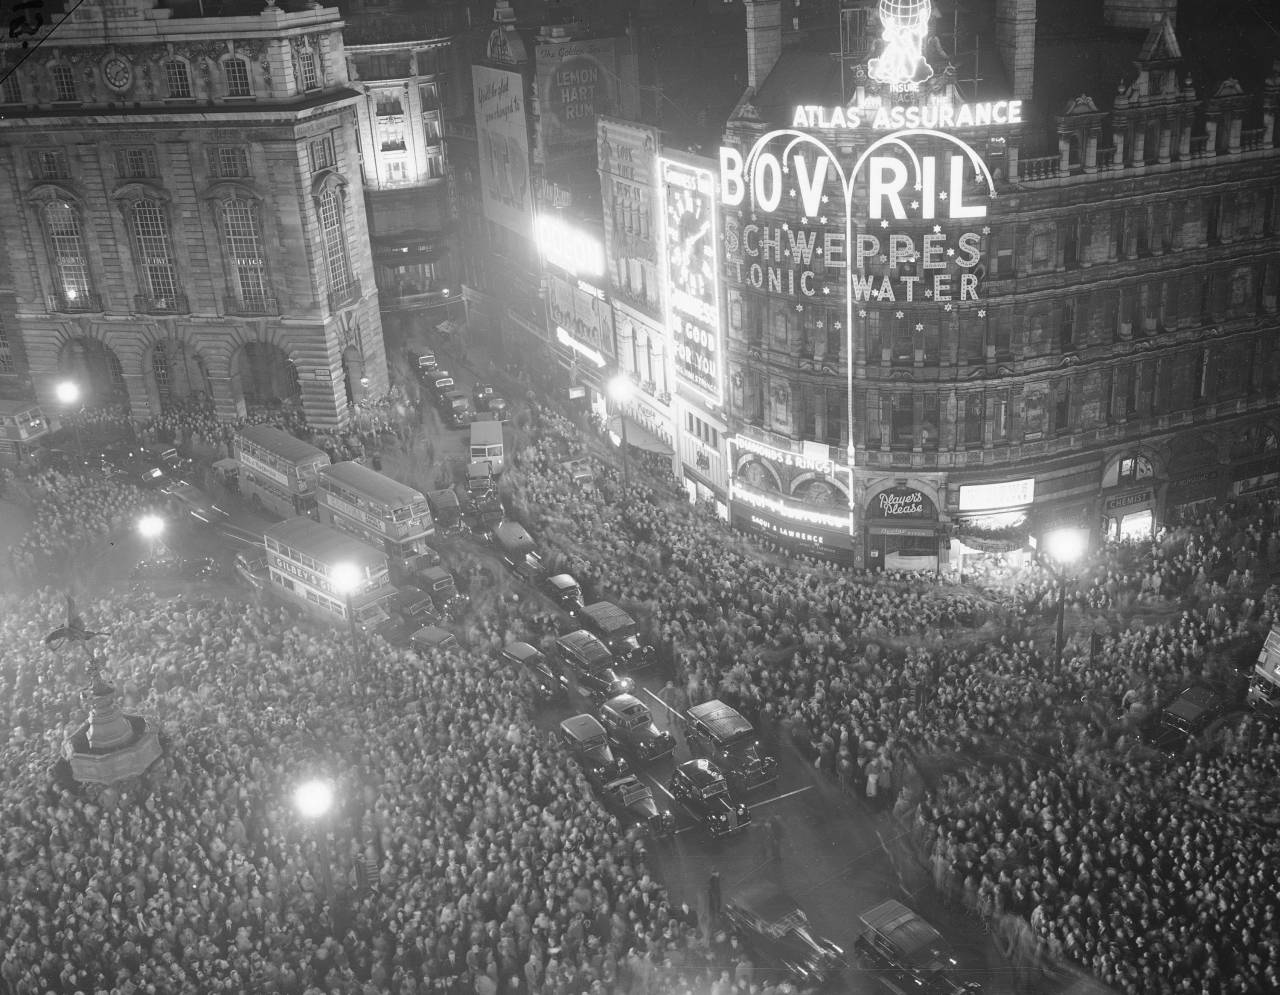 After nearly 10 years of comparative gloom, the bright lights of Piccadilly Circus come back to London, April 2, 1949, when the ban on the use of electricity for outdoor advertising was lifted at noon. This is the scene as crowds watched the signs light up again. The ban will be re-imposed on October 2.